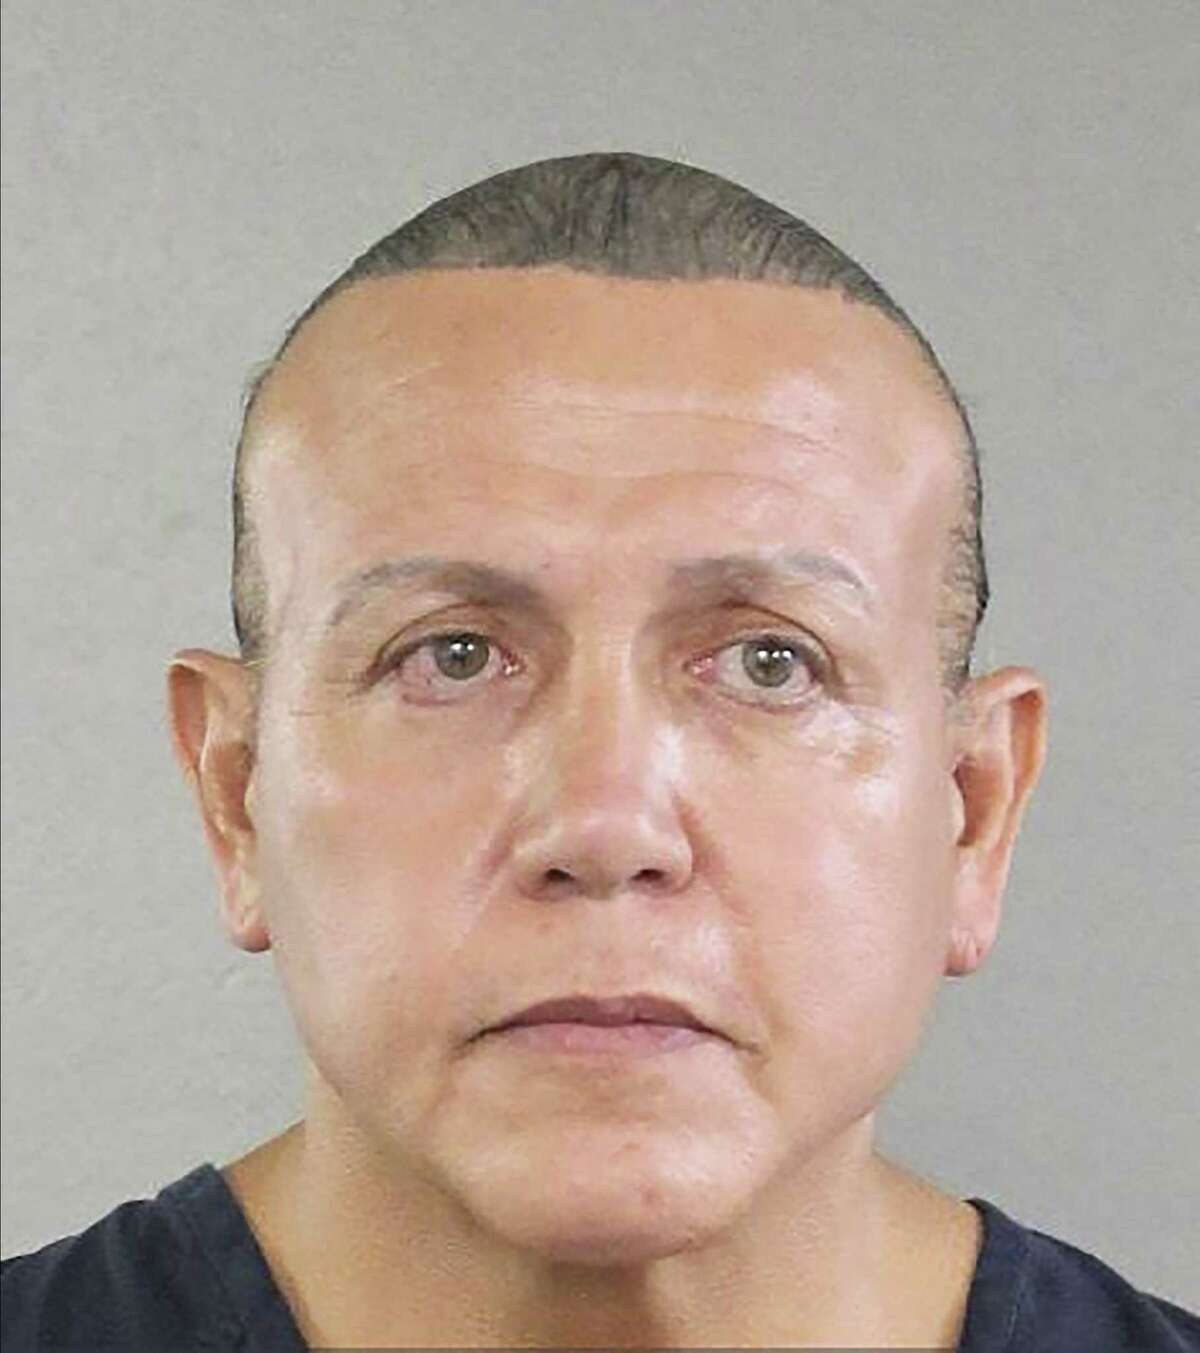 A photo provided by the Broward County Sheriff's Office of Cesar Sayoc Jr., the man suspected of mailing a dozen parcel bombs to critics of President Donald Trump in 2018. The estranged family of Sayoc tried to plead with him on Sunday to accept mental health care and hire a proficient lawyer to represent him in the case, which could lead to his imprisonment for decades. (Broward County Sheriff's Office via The New York Times) -- FOR EDITORIAL USE ONLY --